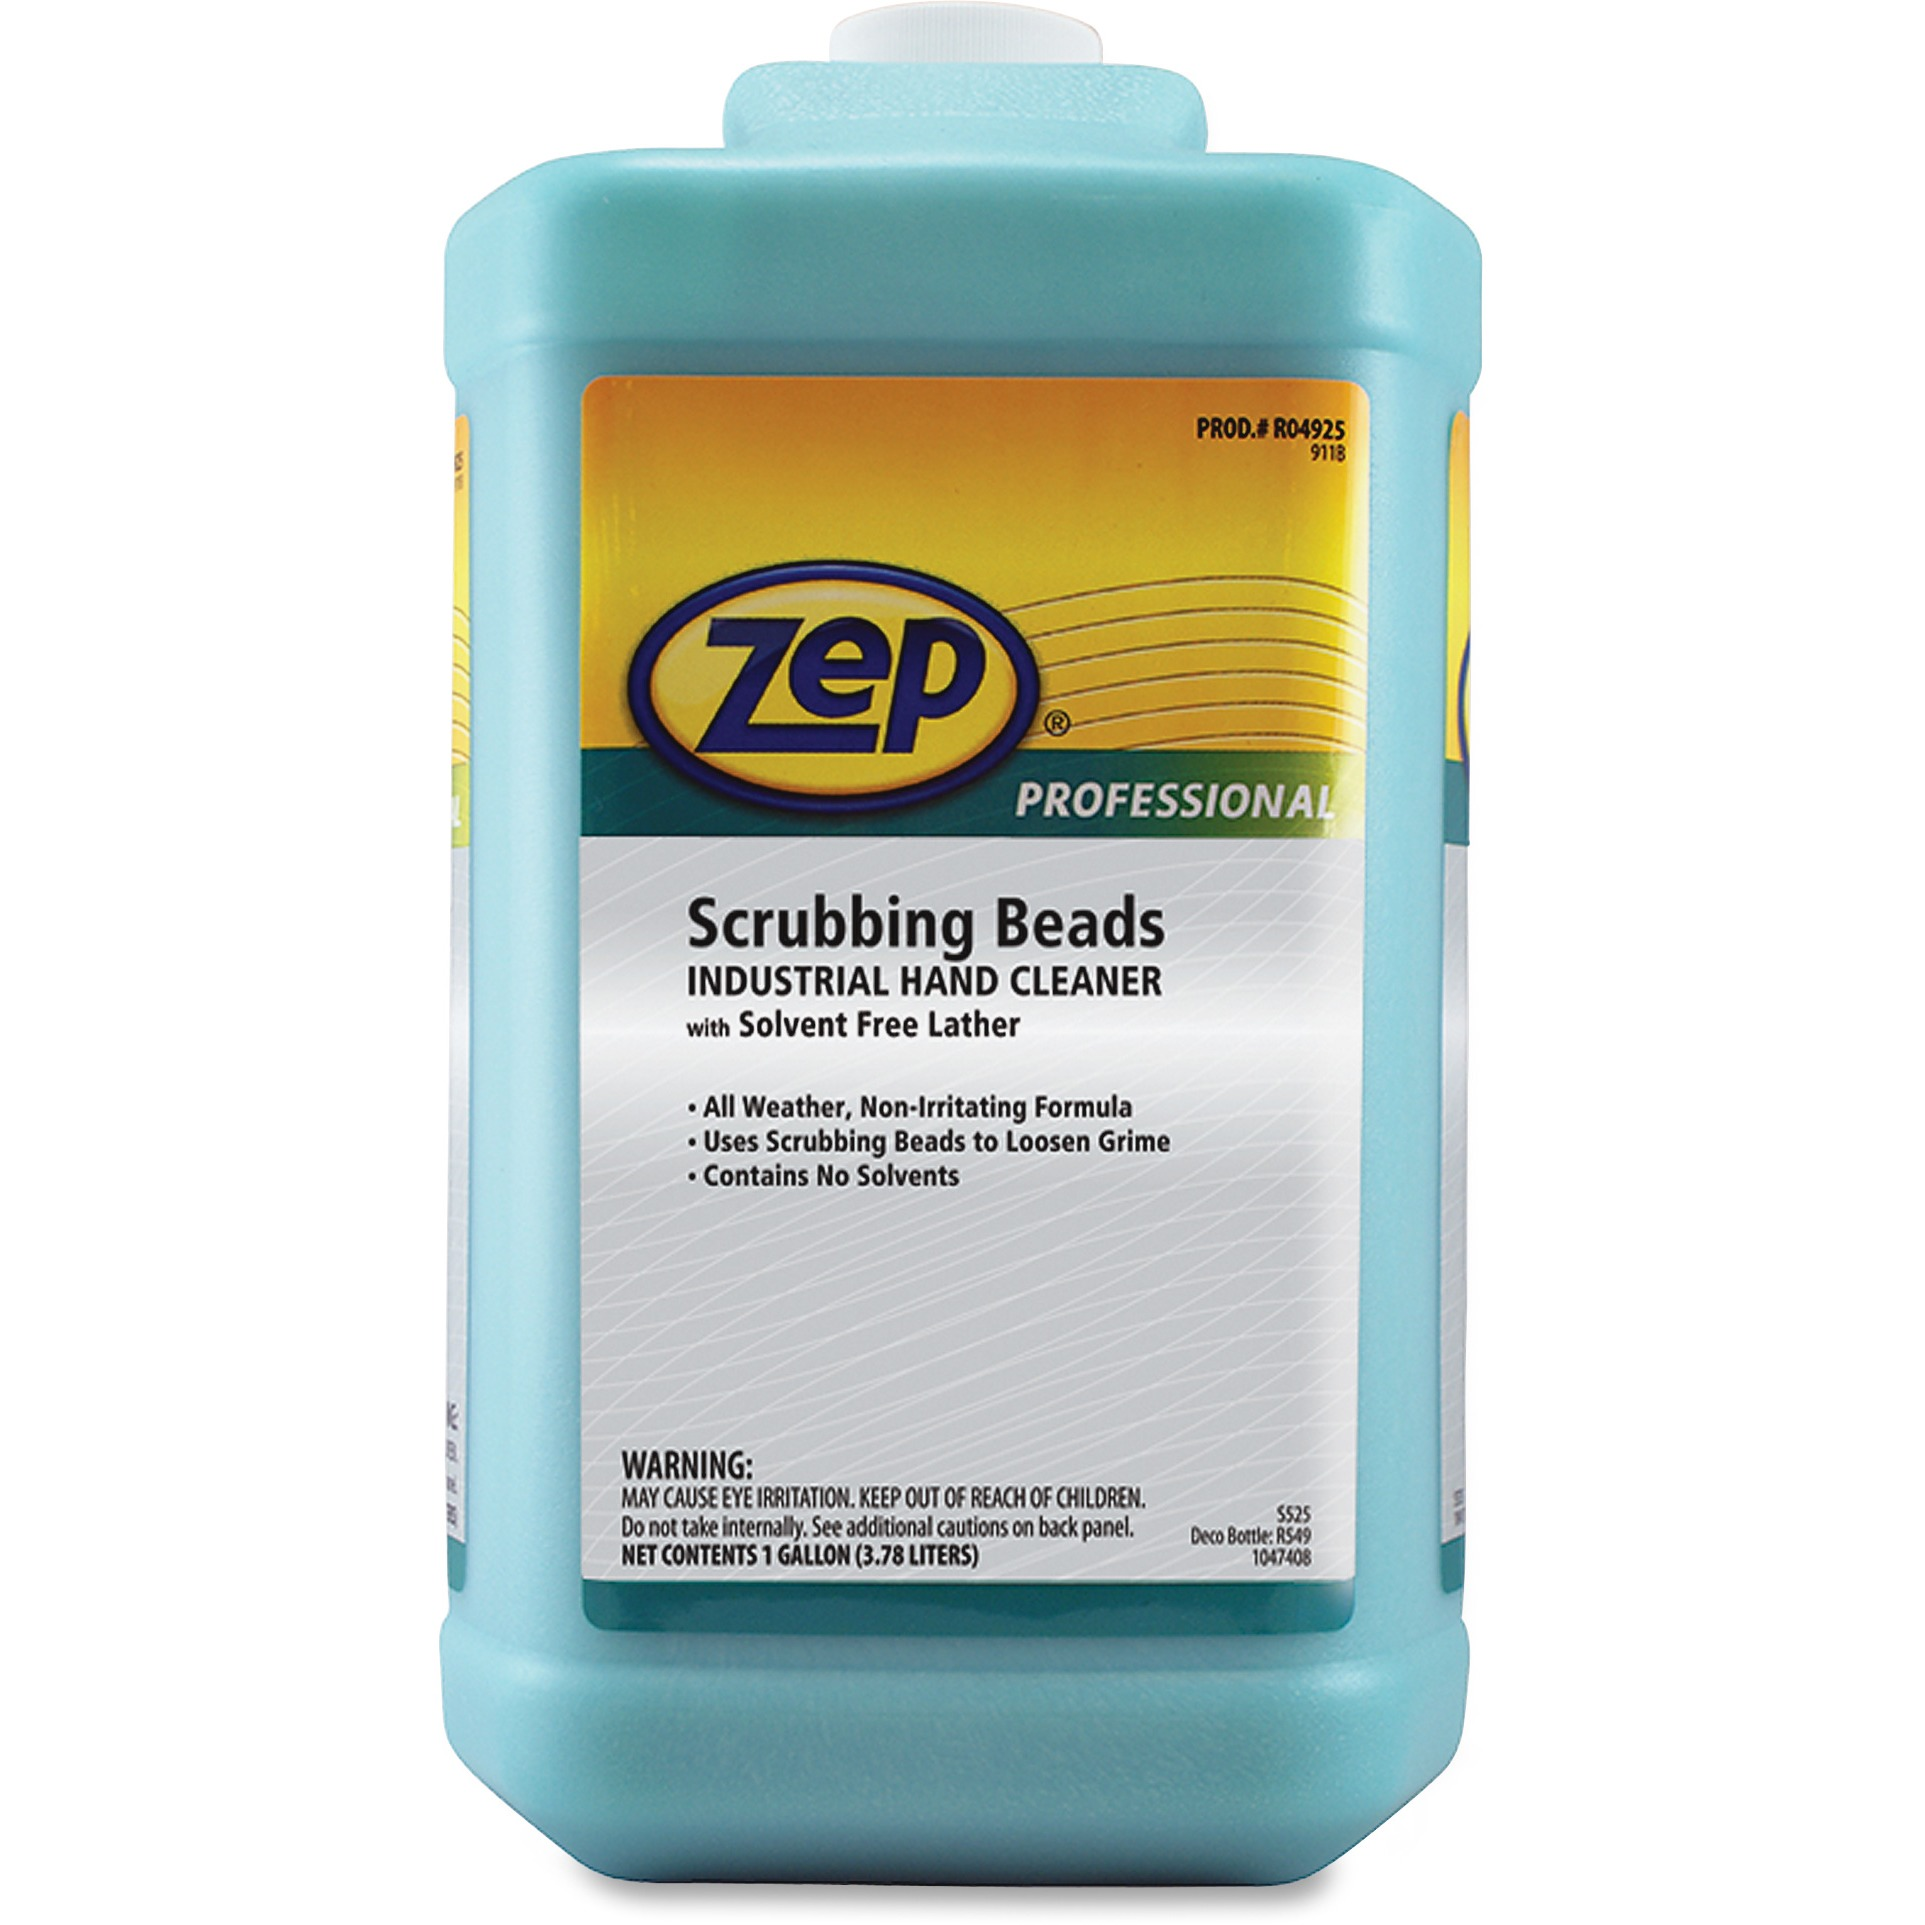 Zep Inc. Scrubbing Beads Industrial Hand Cleaner - ZPER04925CT